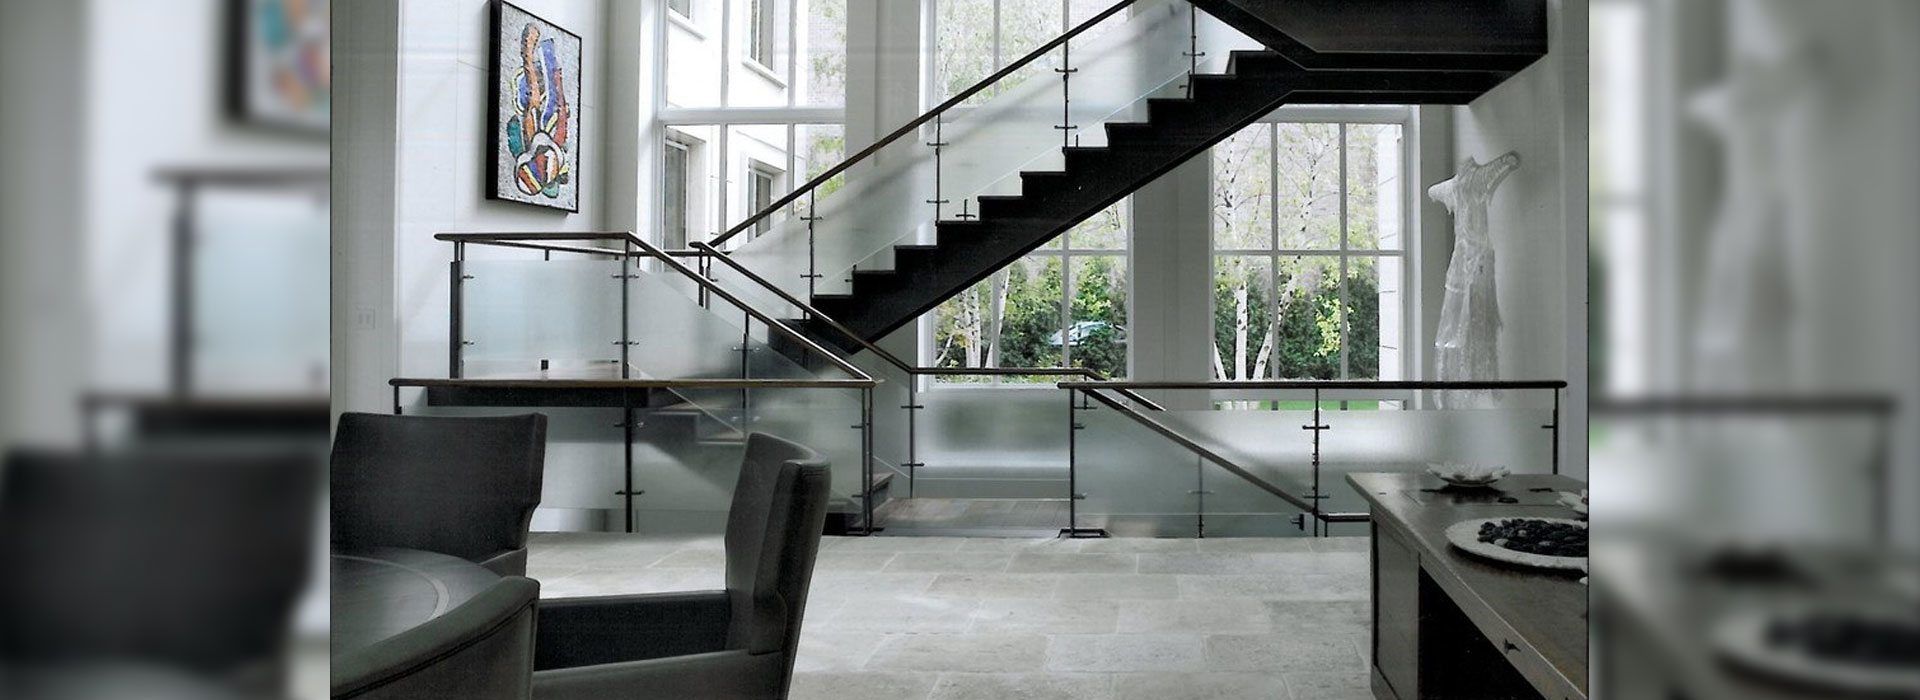 Glass Handrail Systems Residential Glass Anchor Ventana Glass   Glass Banister Near Me   Floating Staircase   Interior Railings   Interior Stairs   Spiral Staircase   Frameless Glass